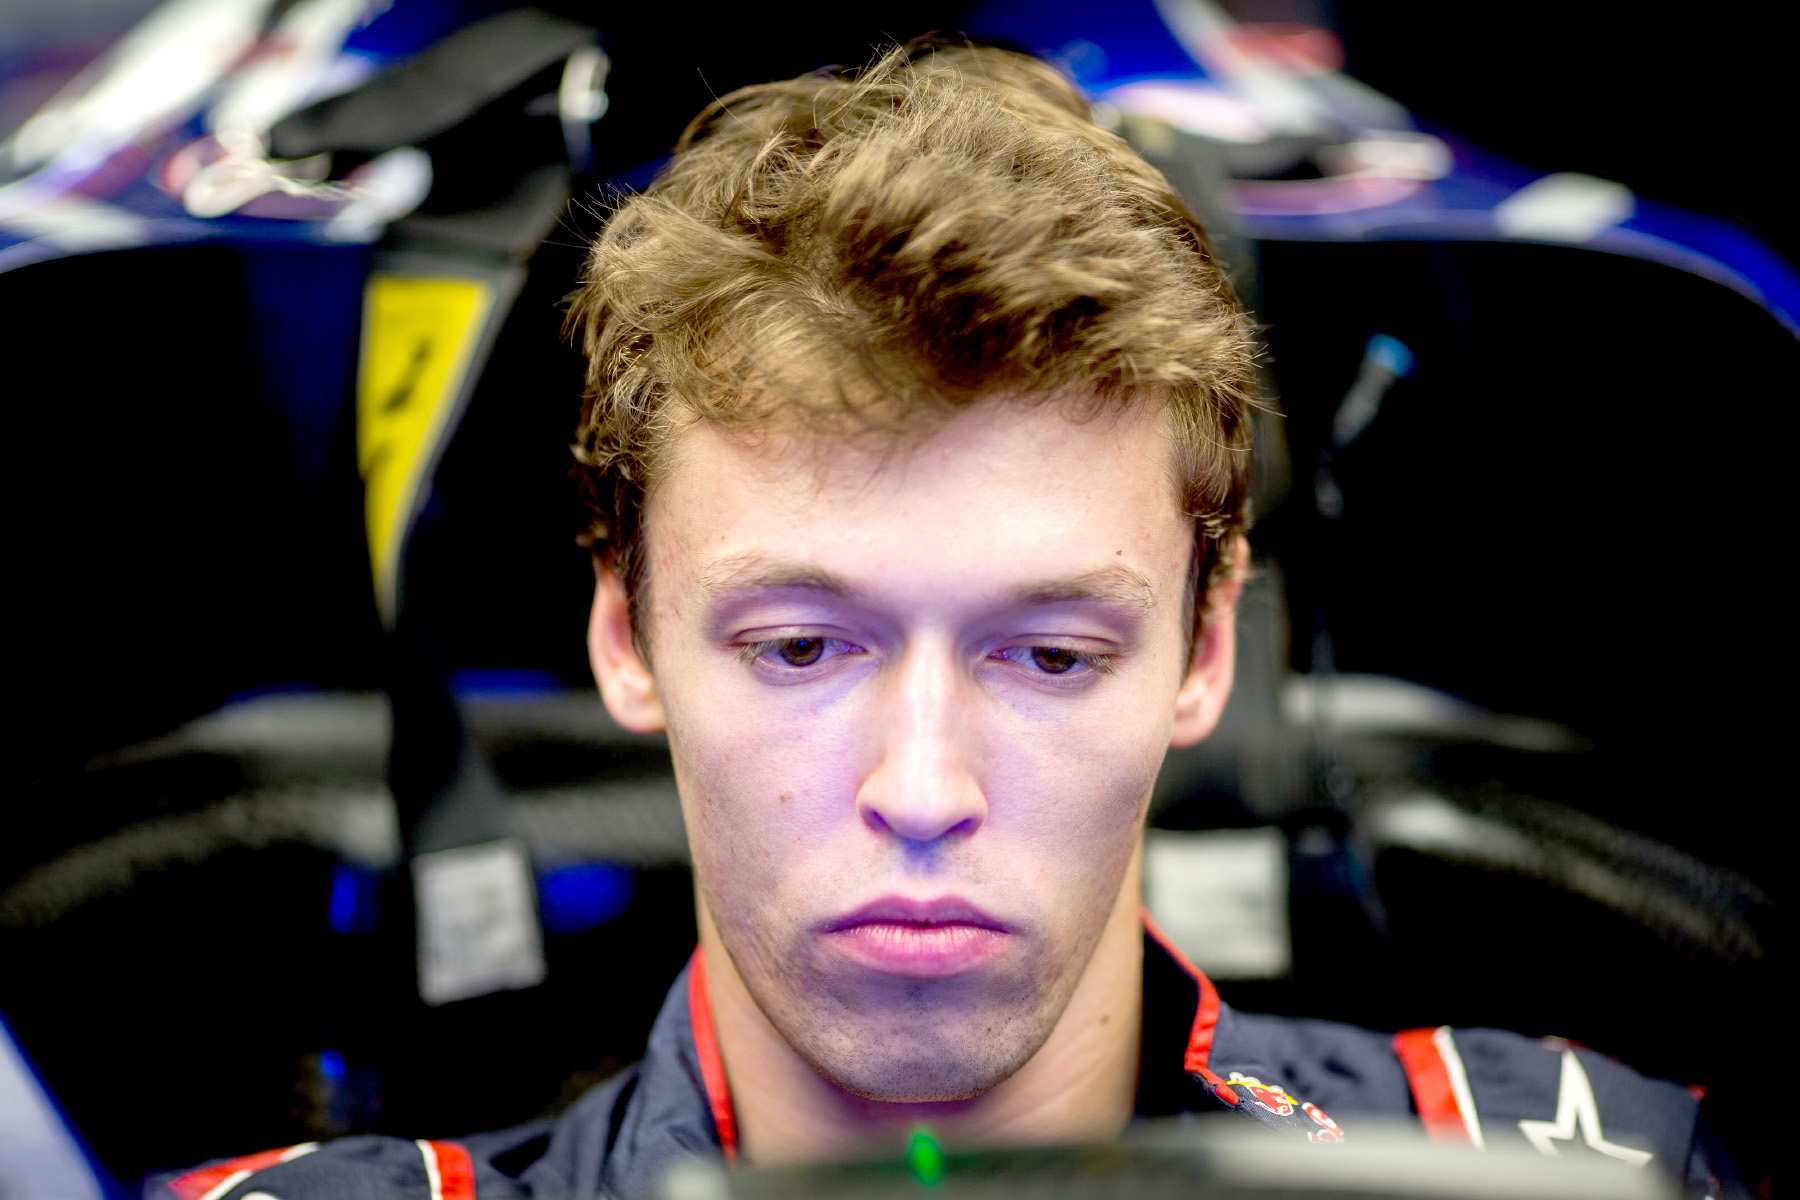 Daniil Kvyat sits in his car at the 2017 Hungarian Grand Prix.